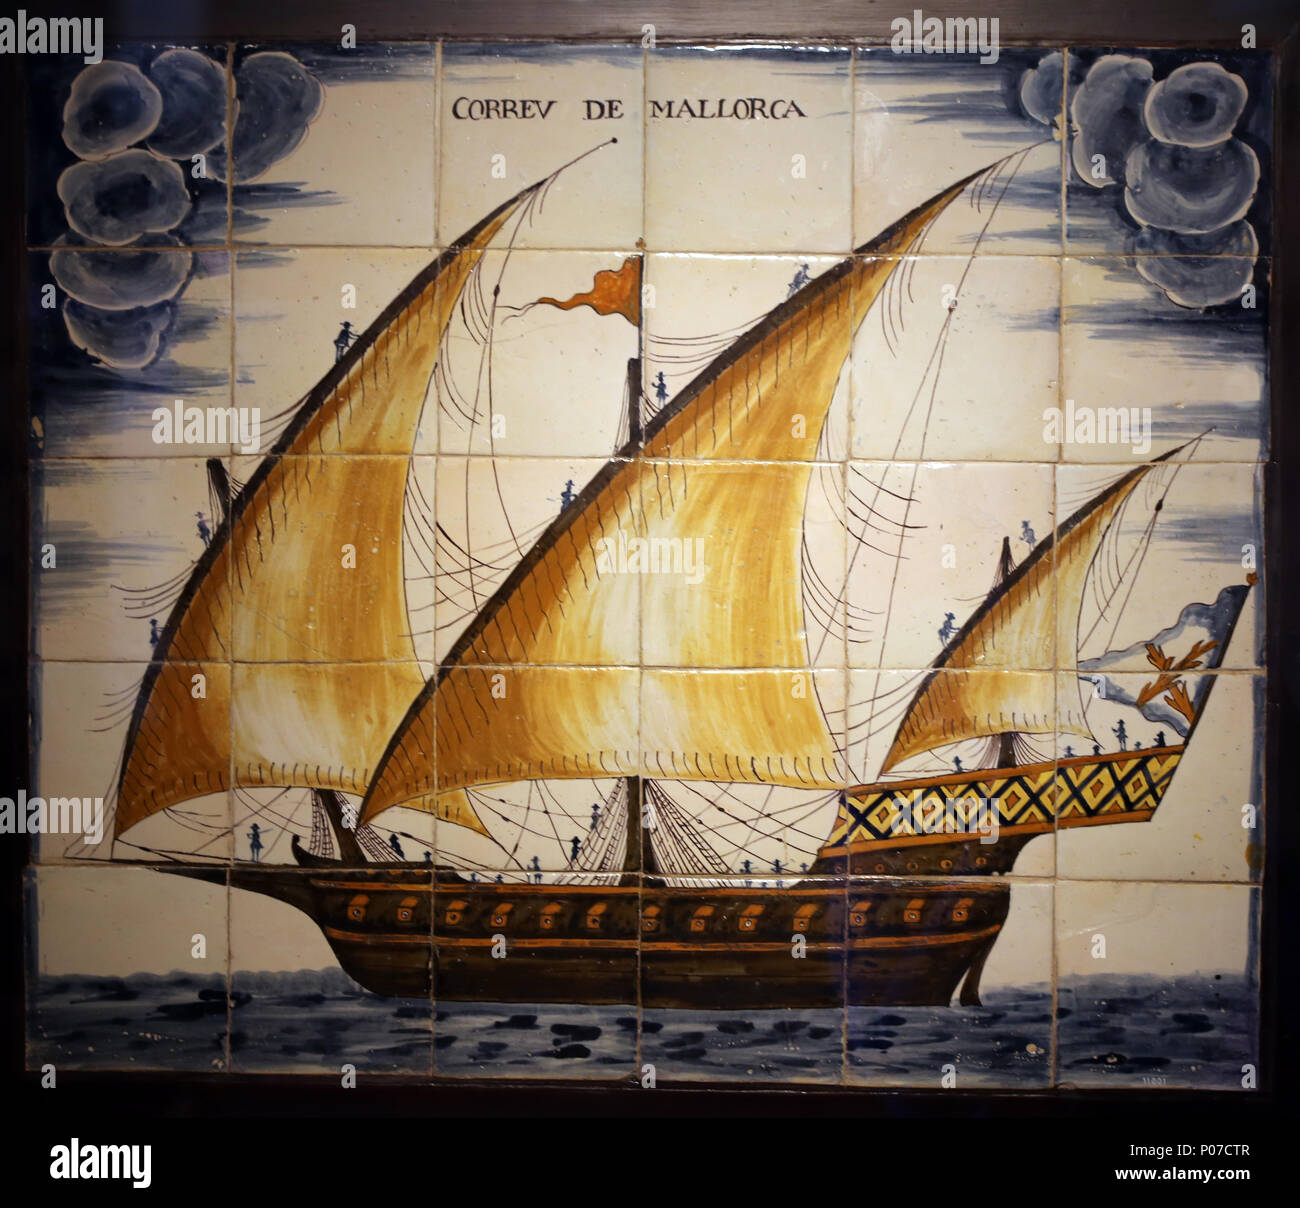 Ceramic panel depicting the Mail of Mallorca. Xebec type ship, 18th century. Barcelona Maritime Museum. Spain. - Stock Image